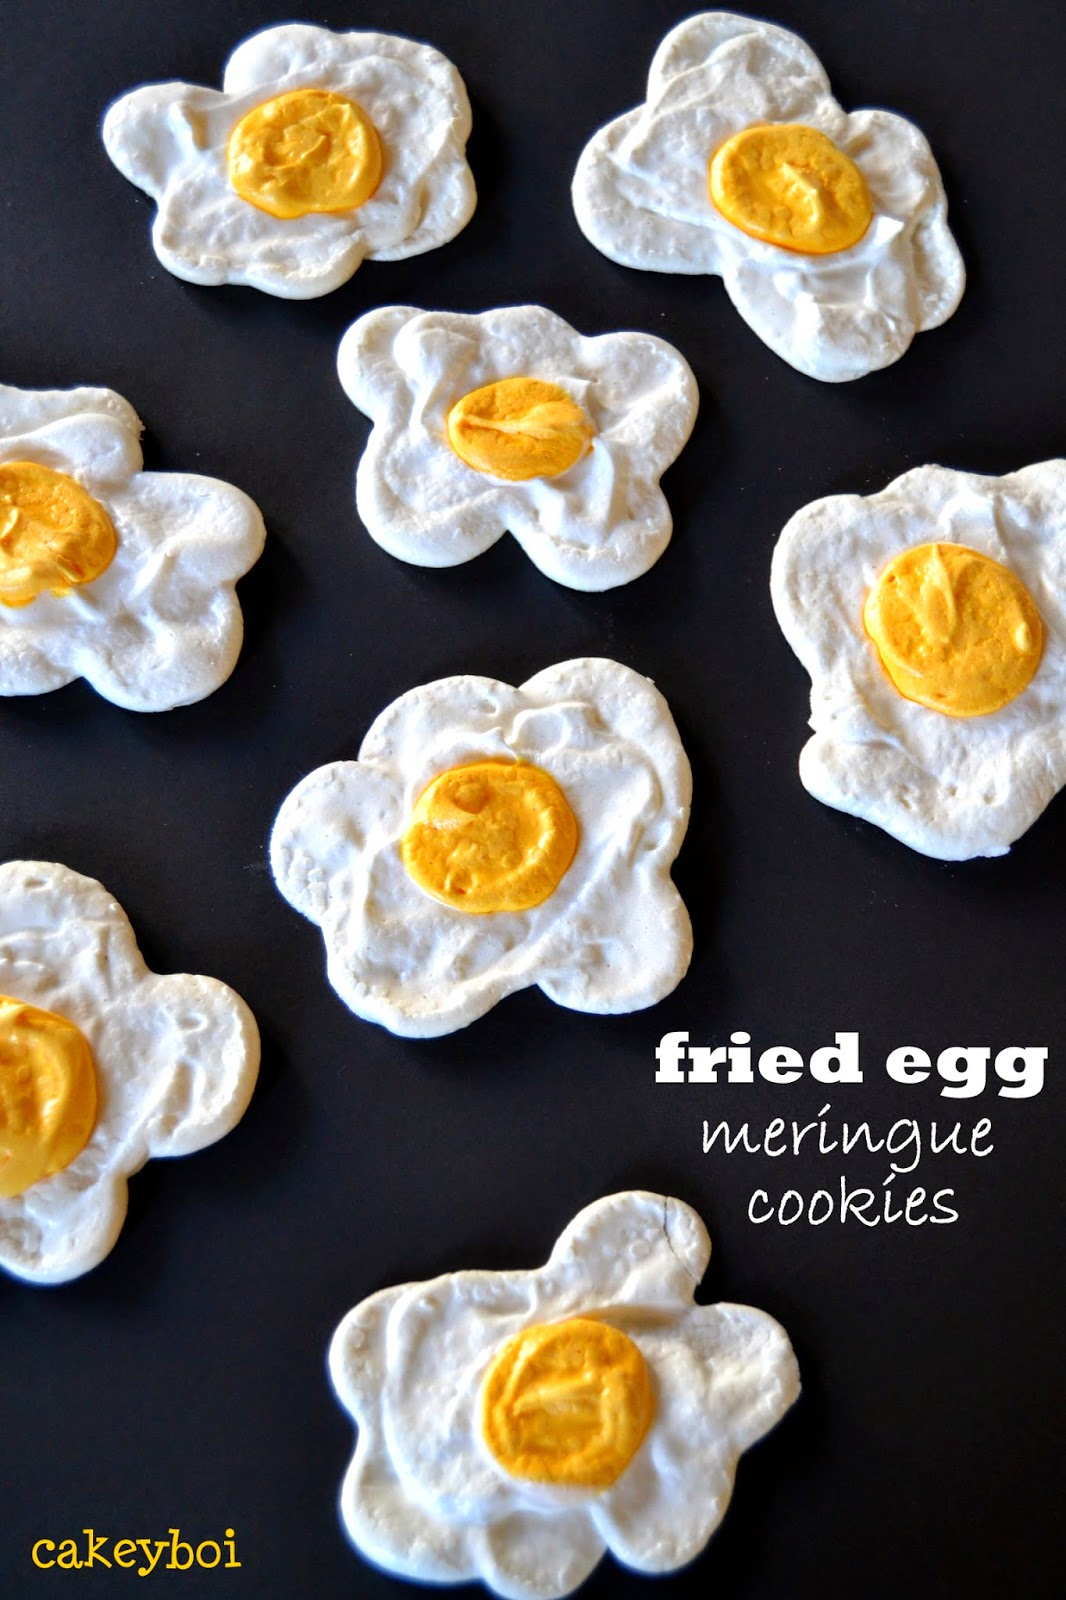 meringues that look just like a fried egg